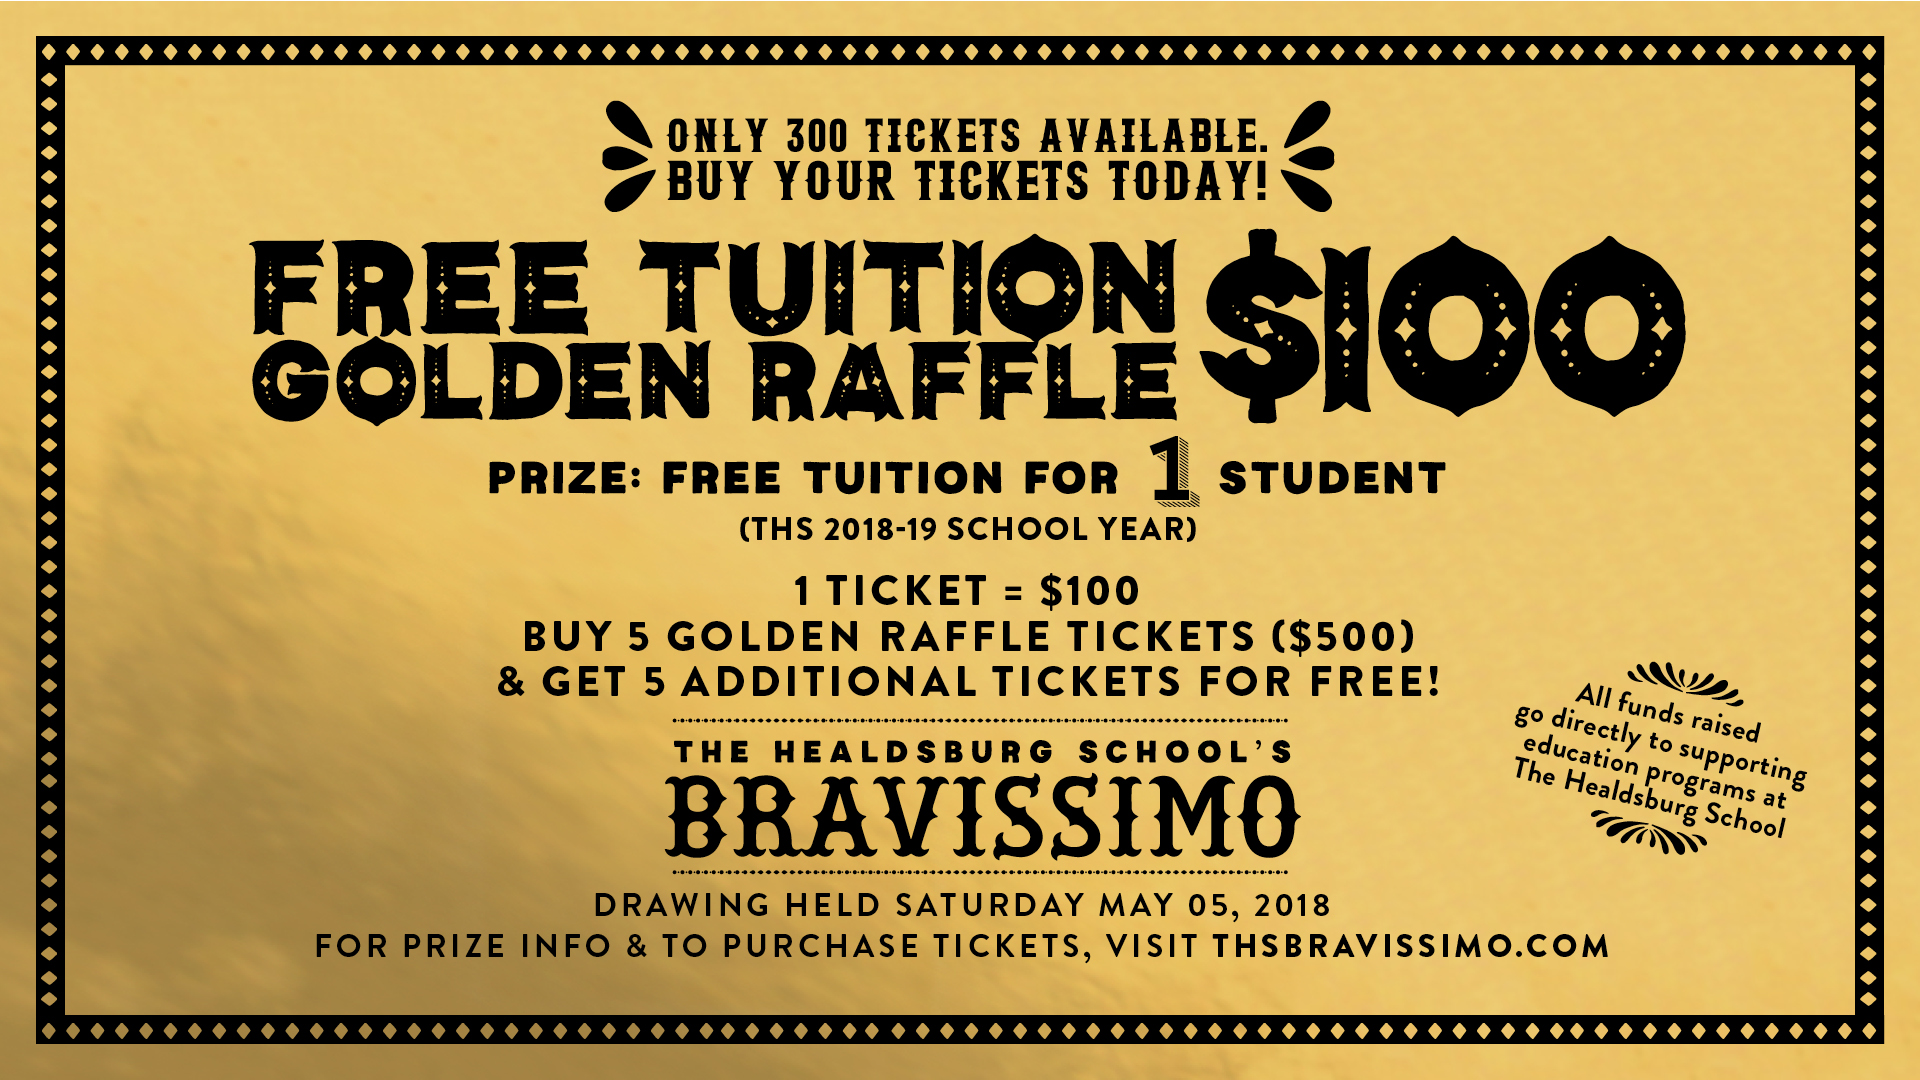 purchase your golden raffle tickets today